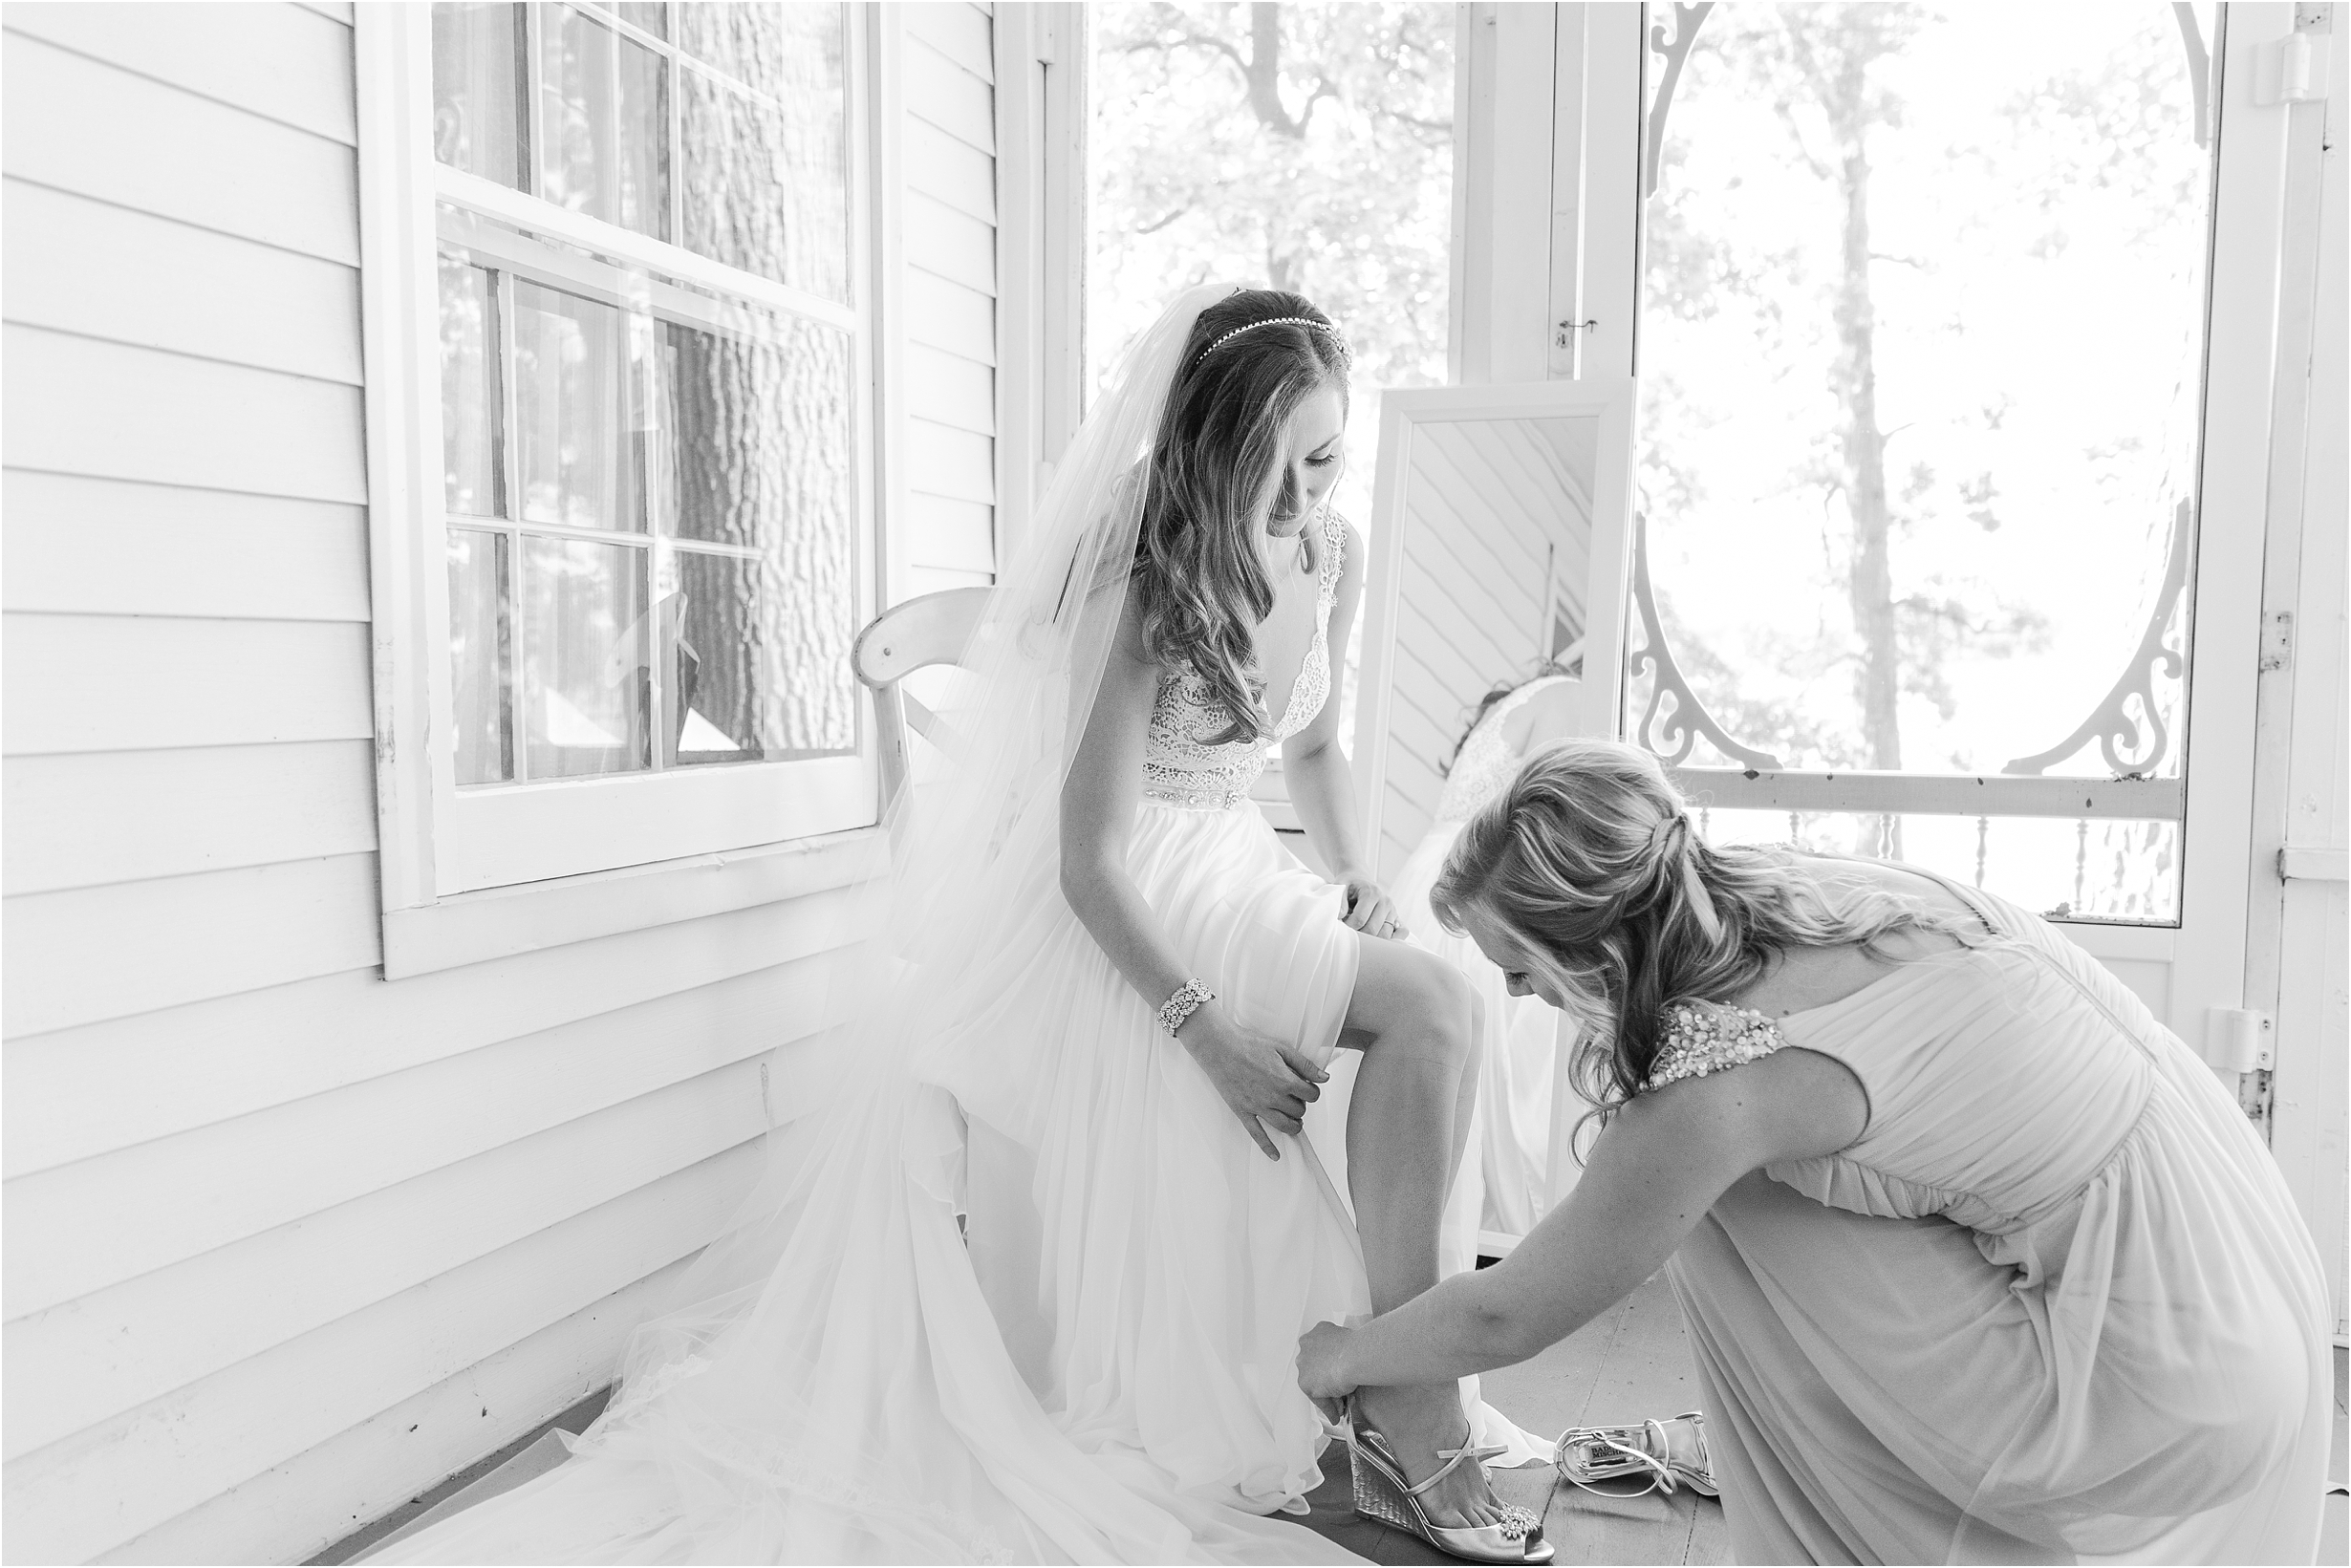 romantic-timeless-candid-wedding-photos-at-waldenwoods-resort-and-conference-center-by-courtney-carolyn-photography_0006.jpg